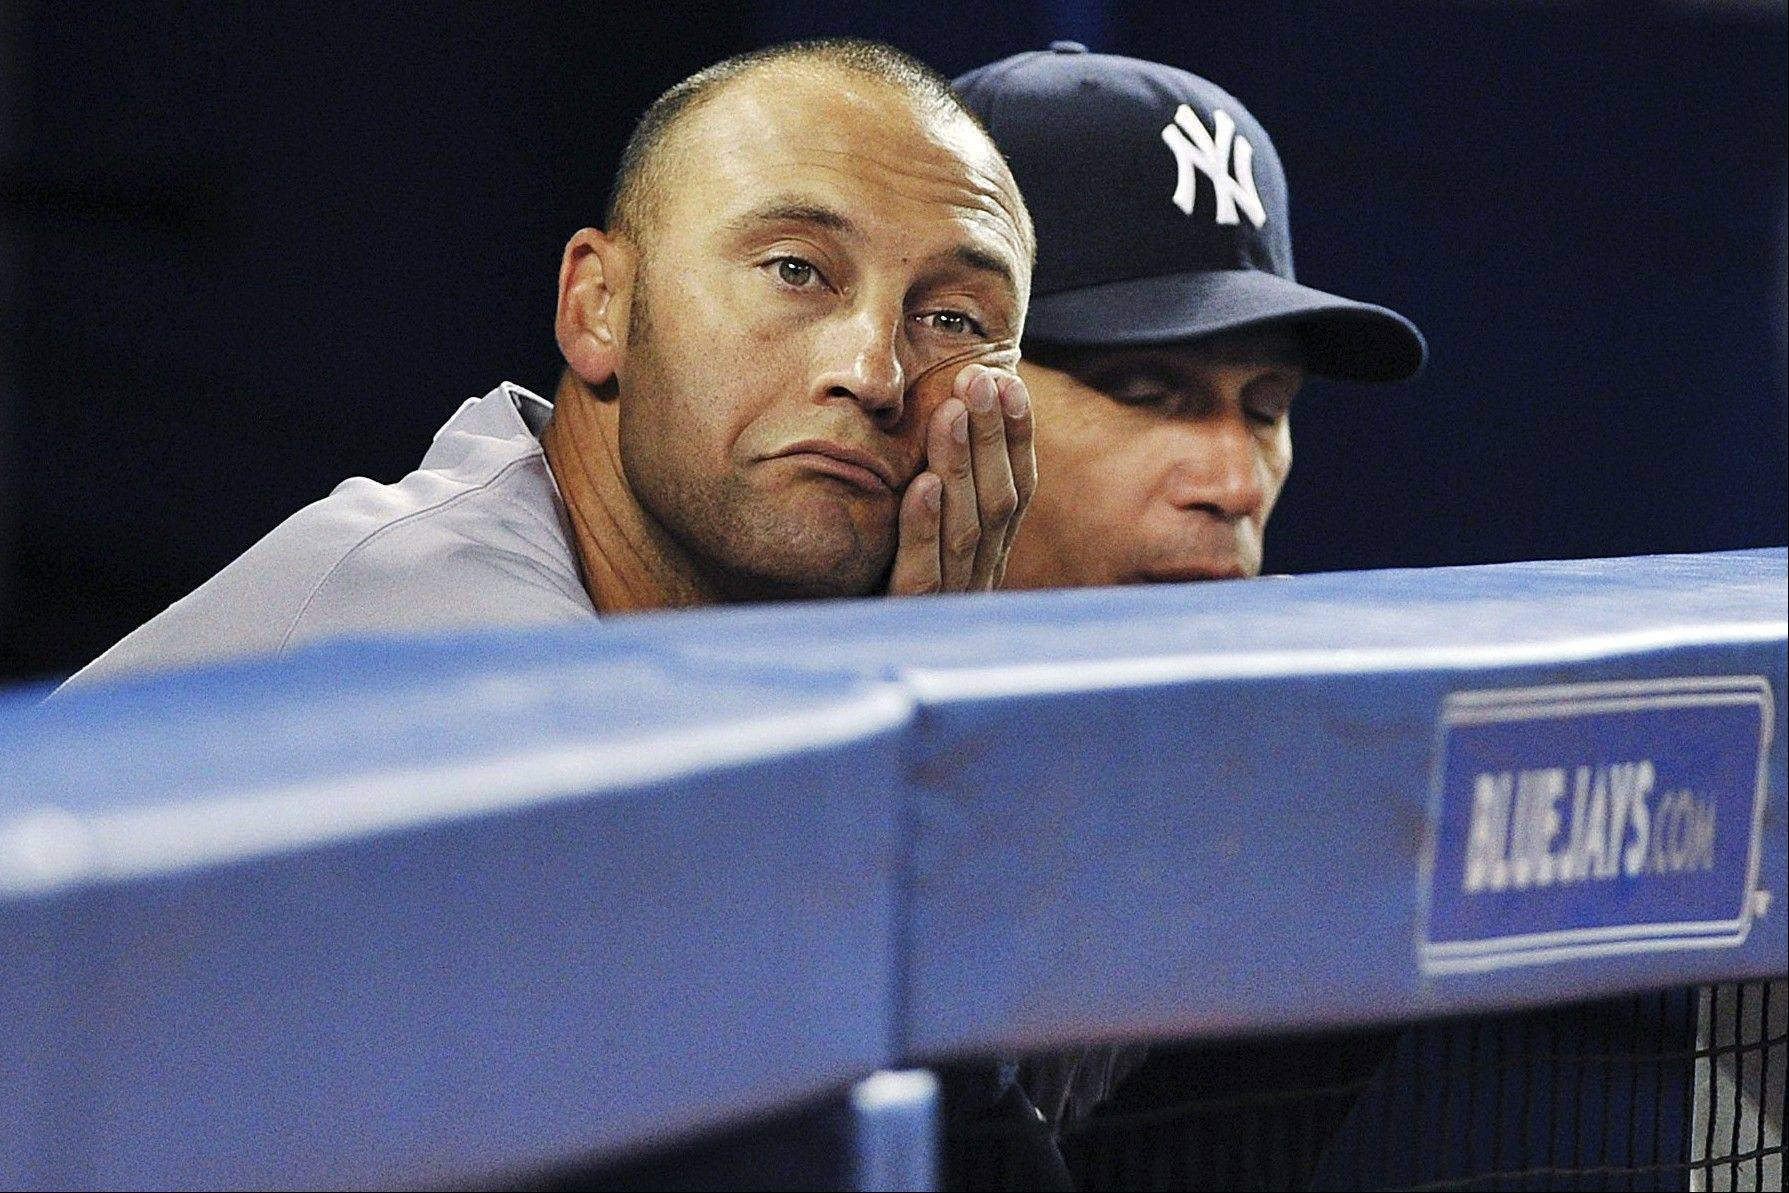 The Yankees' Derek Jeter sits dejectedly in the dugout alongside manager Joe Girardi, right, during the ninth inning of a 6-0 loss in Toronto.